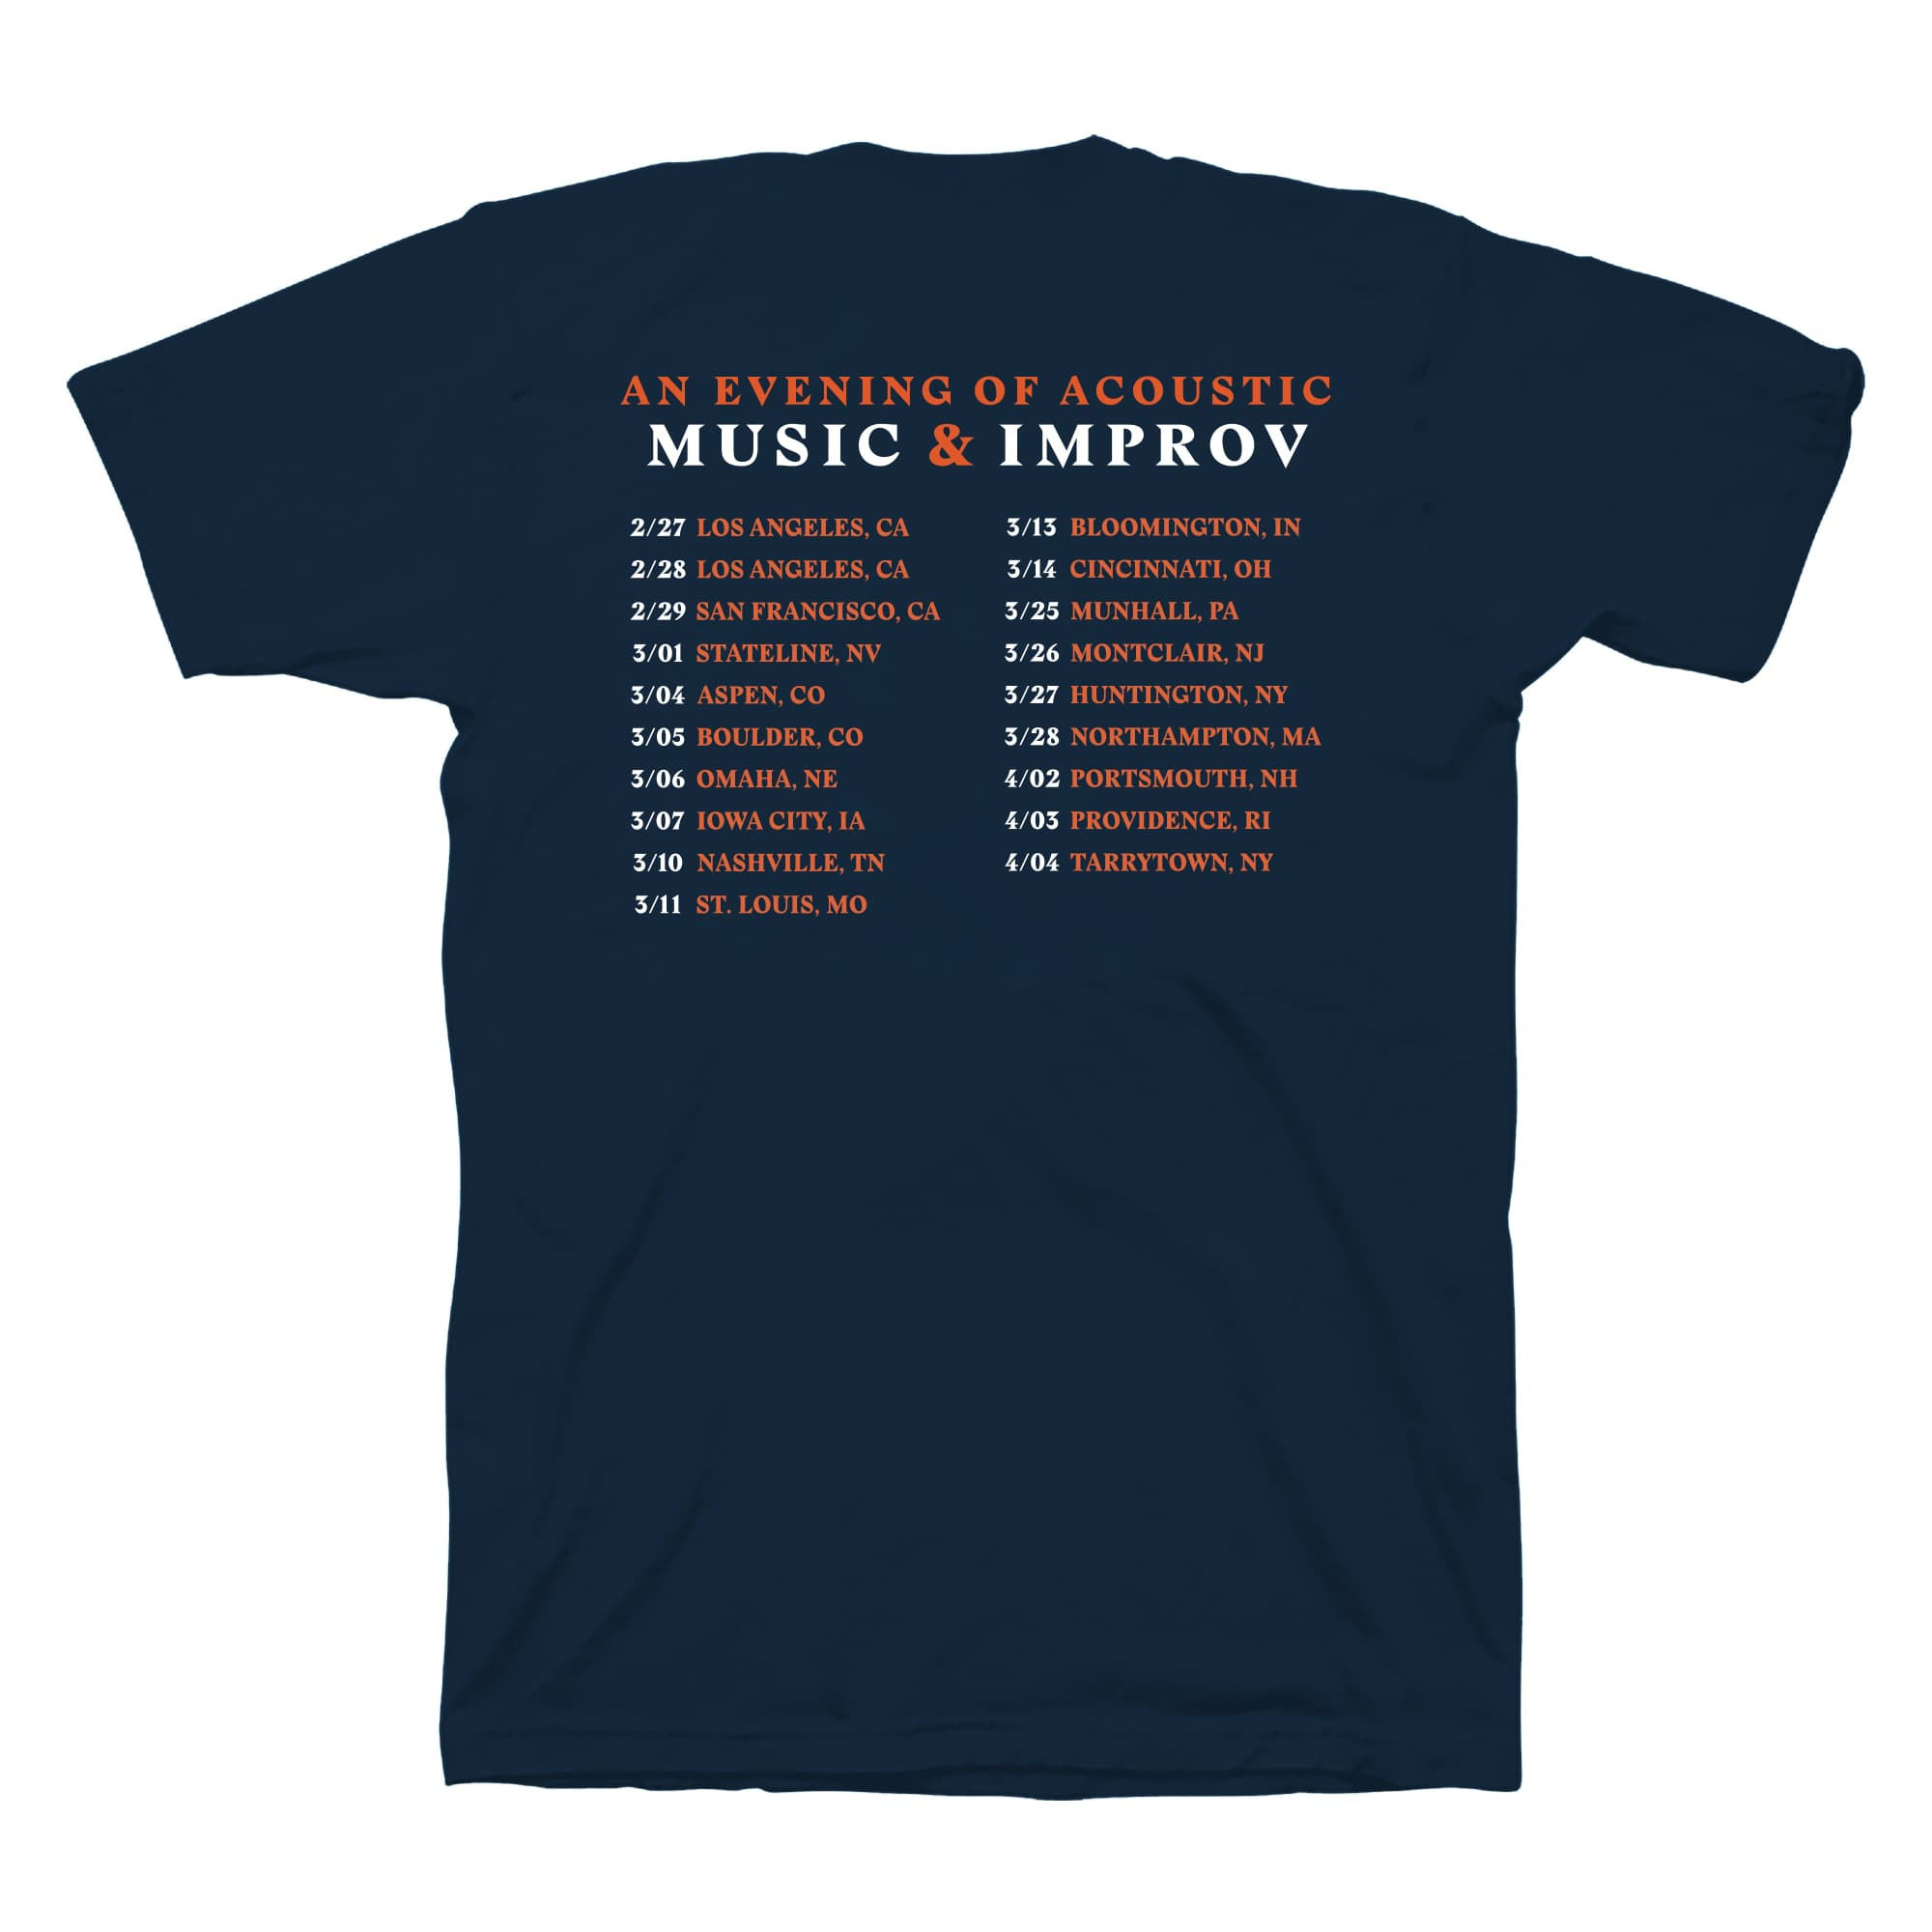 'Music & Improv' Acoustic Tour T-Shirt